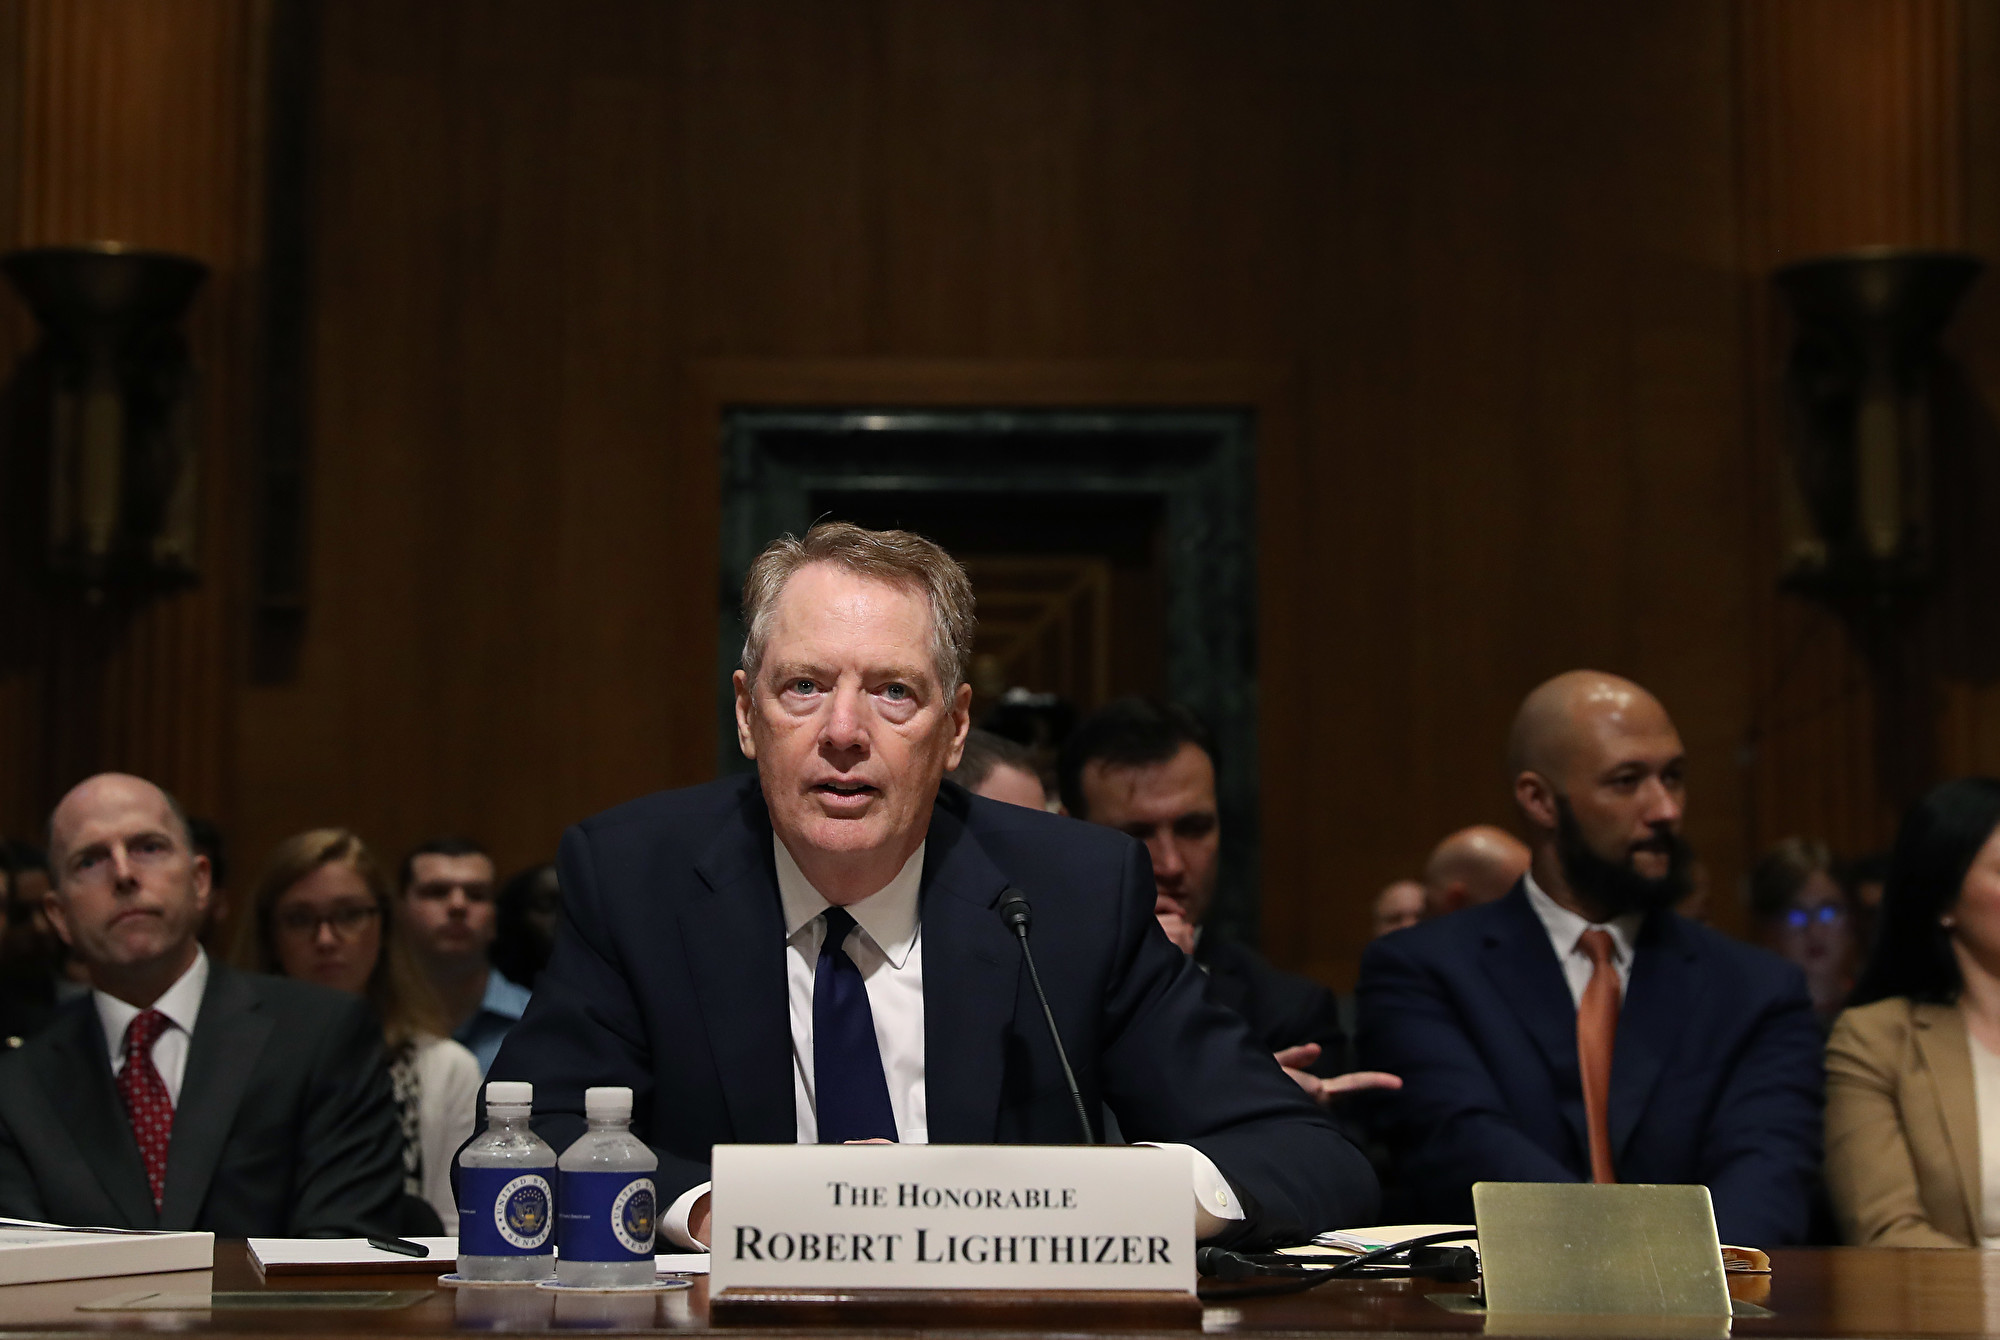 美國貿易代表羅伯特‧萊特希澤(Robert Lighthizer)。(Mark Wilson/Getty Images)